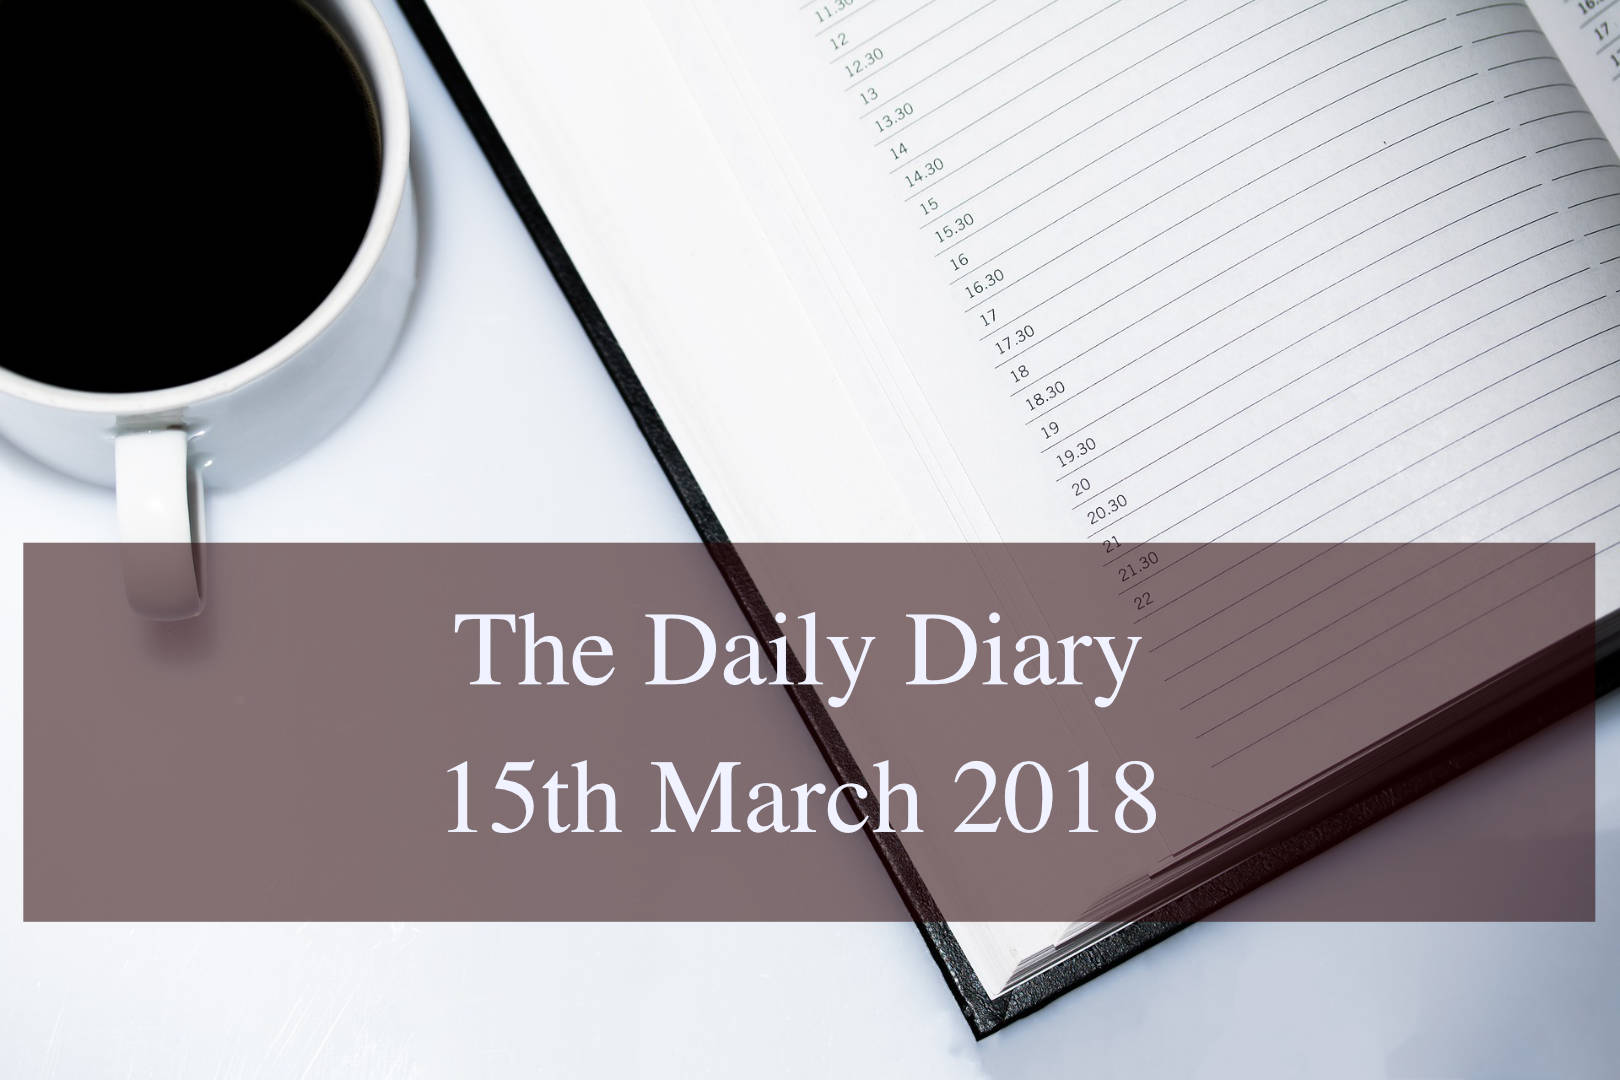 Daily Diary 15th March 2018